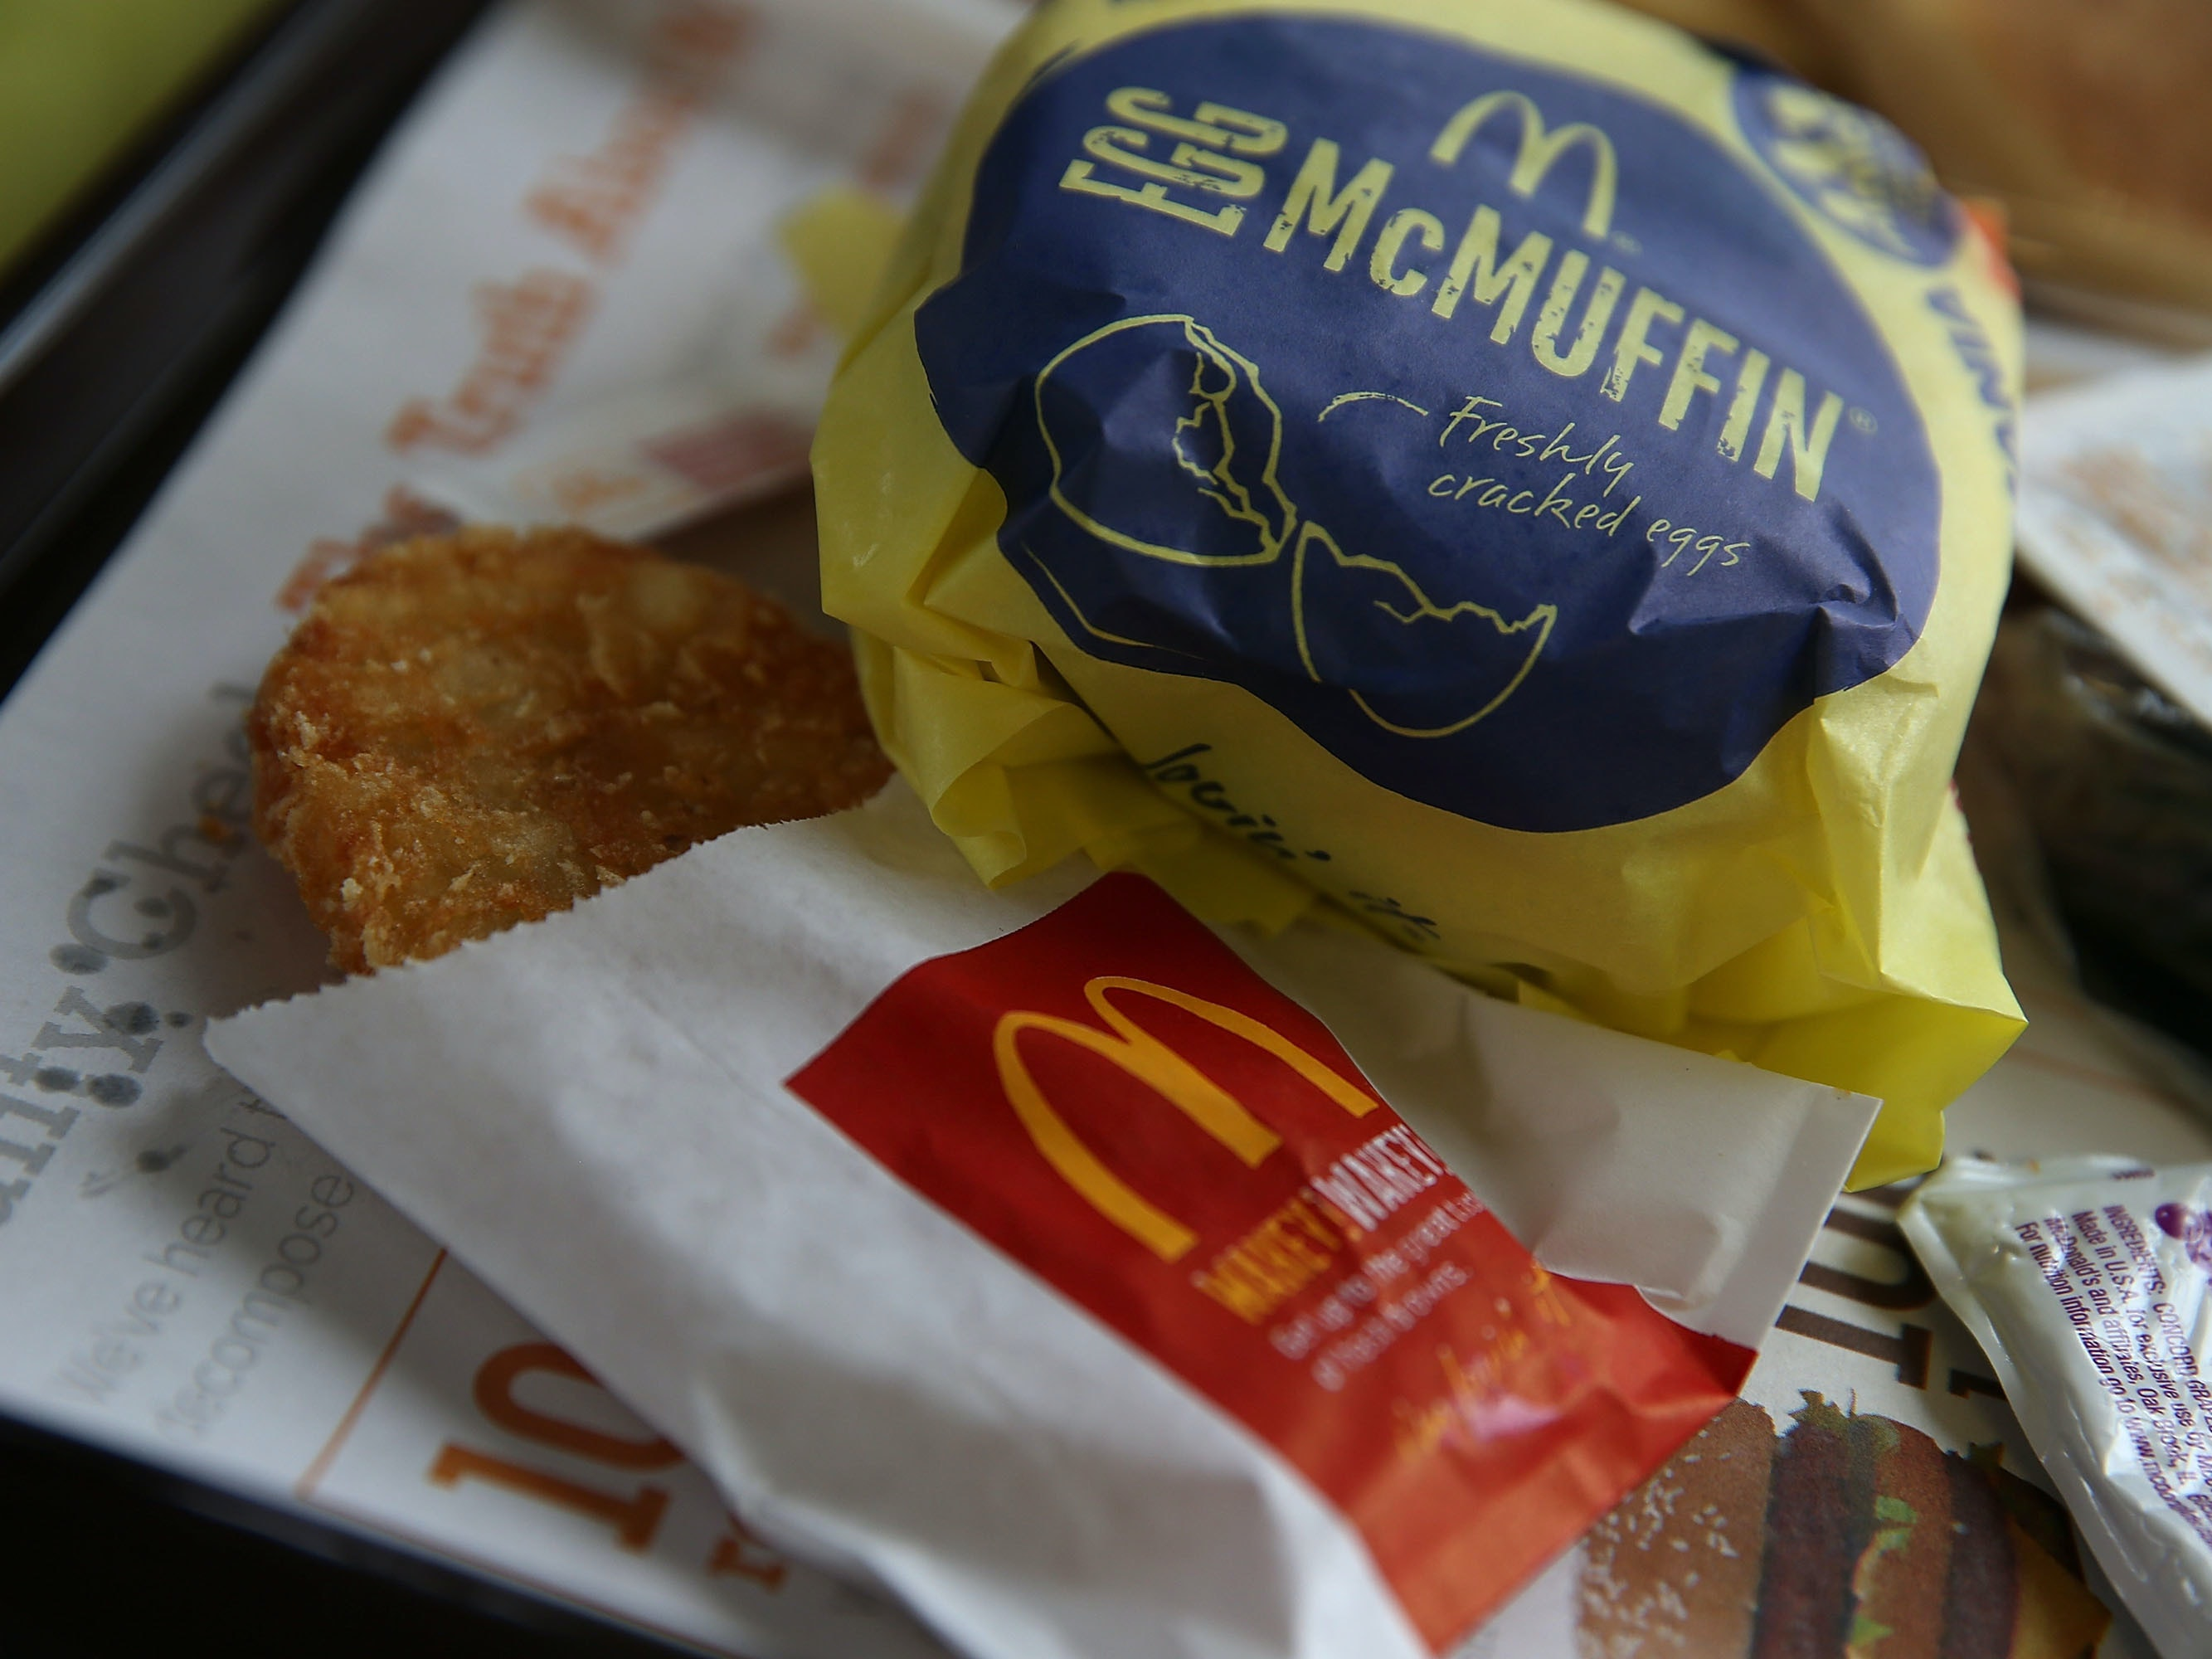 FAIRFIELD, CA - JULY 23:  A McDonald's Egg McMuffin and hash browns are displayed at a McDonald's restaurant on July 23, 2015 in Fairfield, California.  McDonald's has been testing all-day breakfast menus at select locations in the U.S. and could offer it at all locations as early as October.  (Photo illustration by Justin Sullivan/Getty Images)